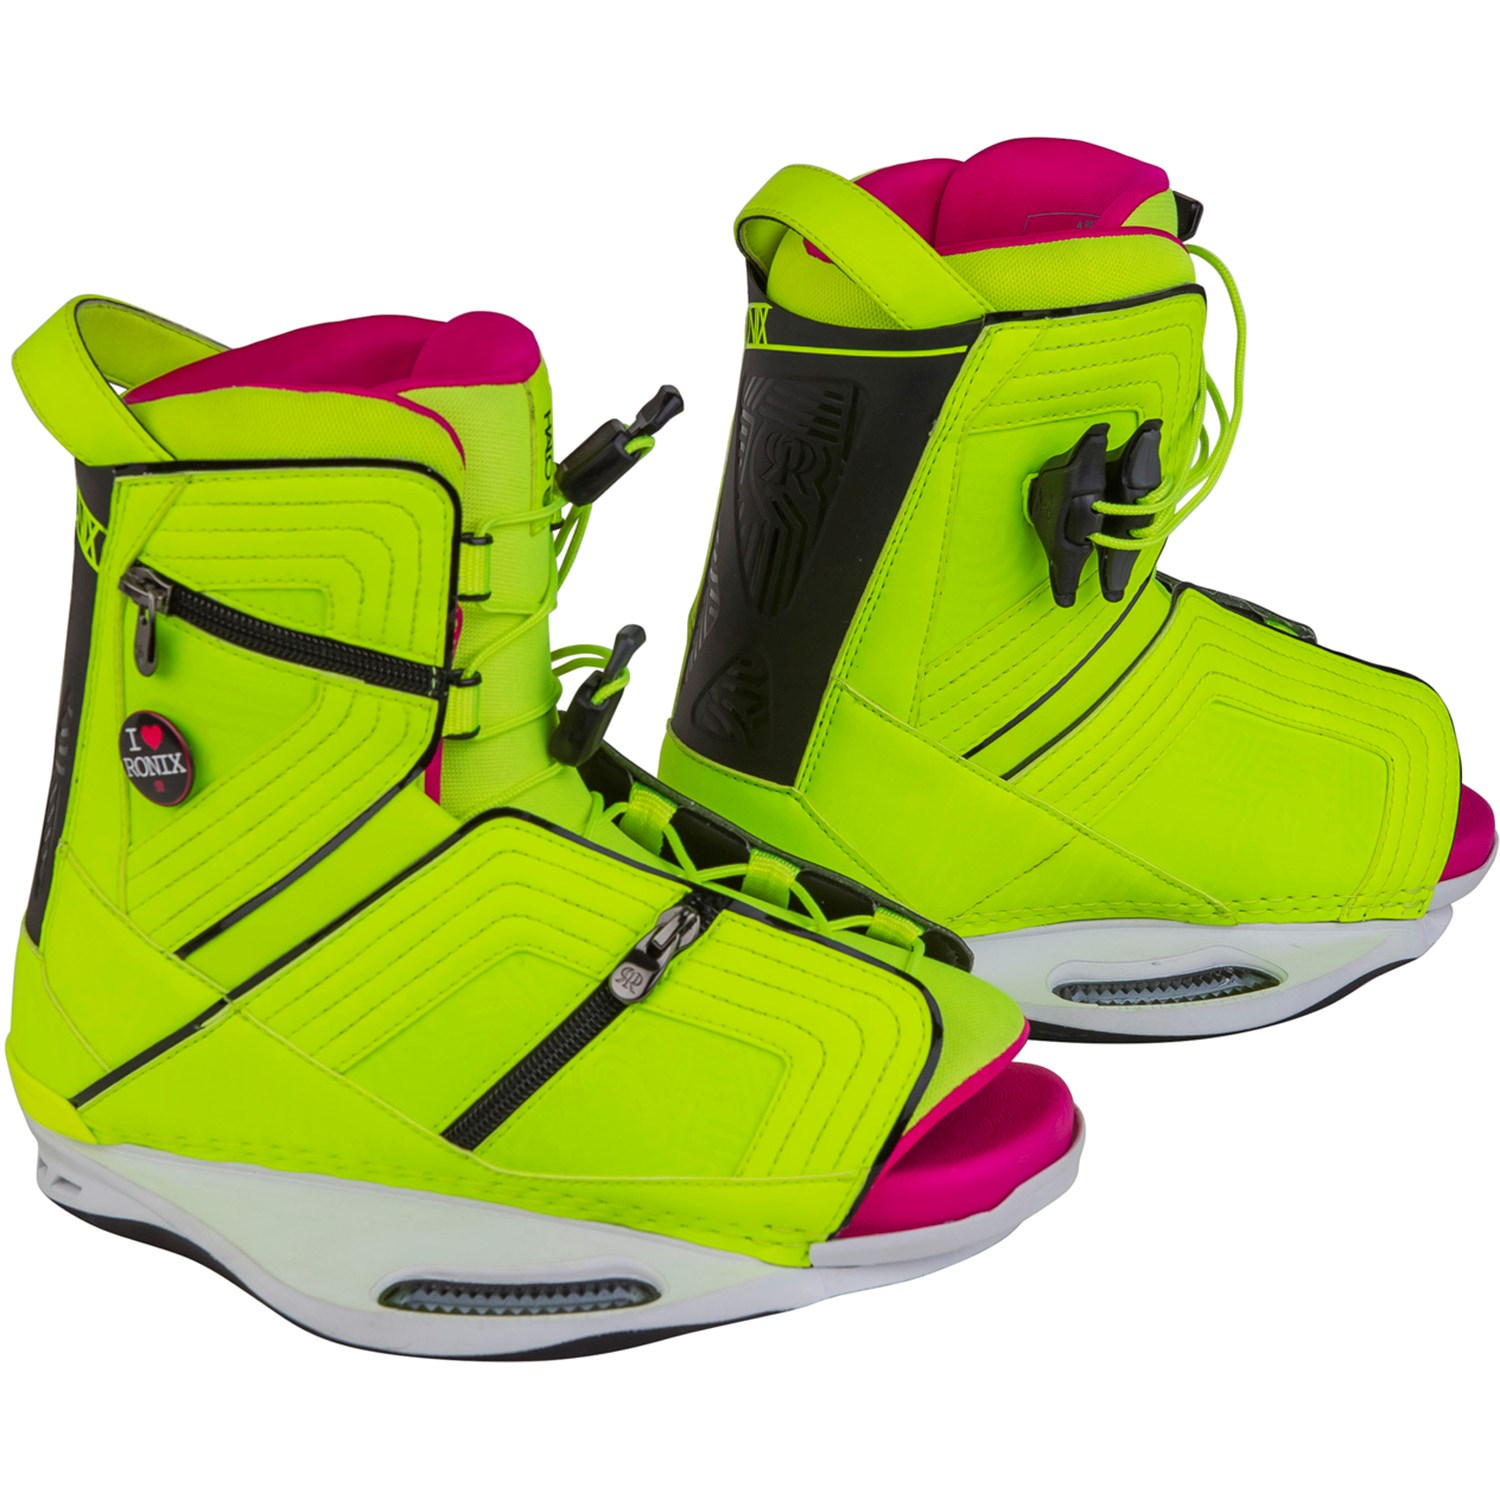 Ronix Limelight ATR Wakeboard + Halo Bindings